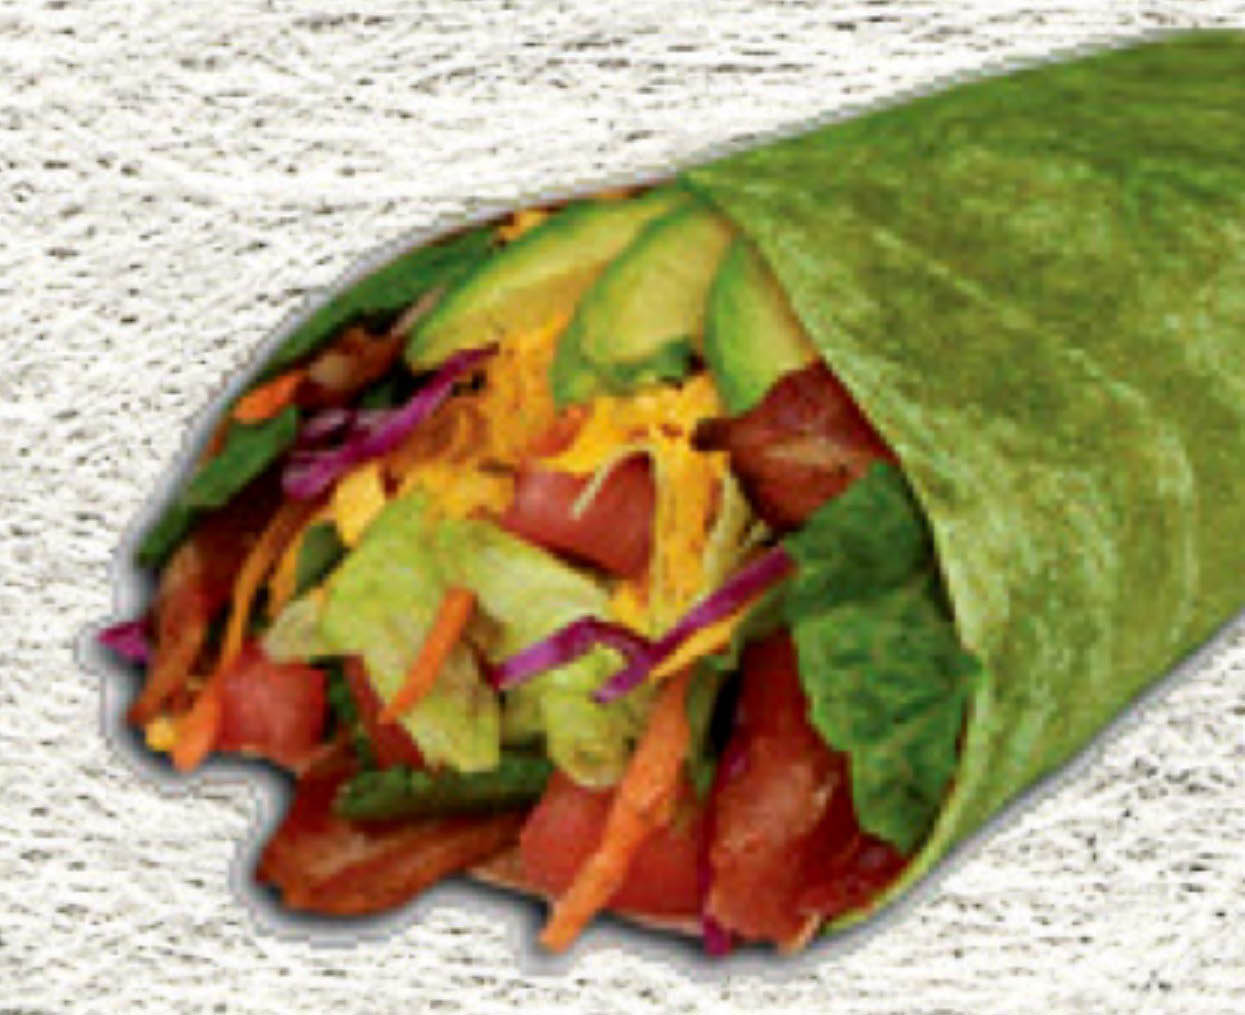 Healthy wraps with fresh meats, cheese and veggies